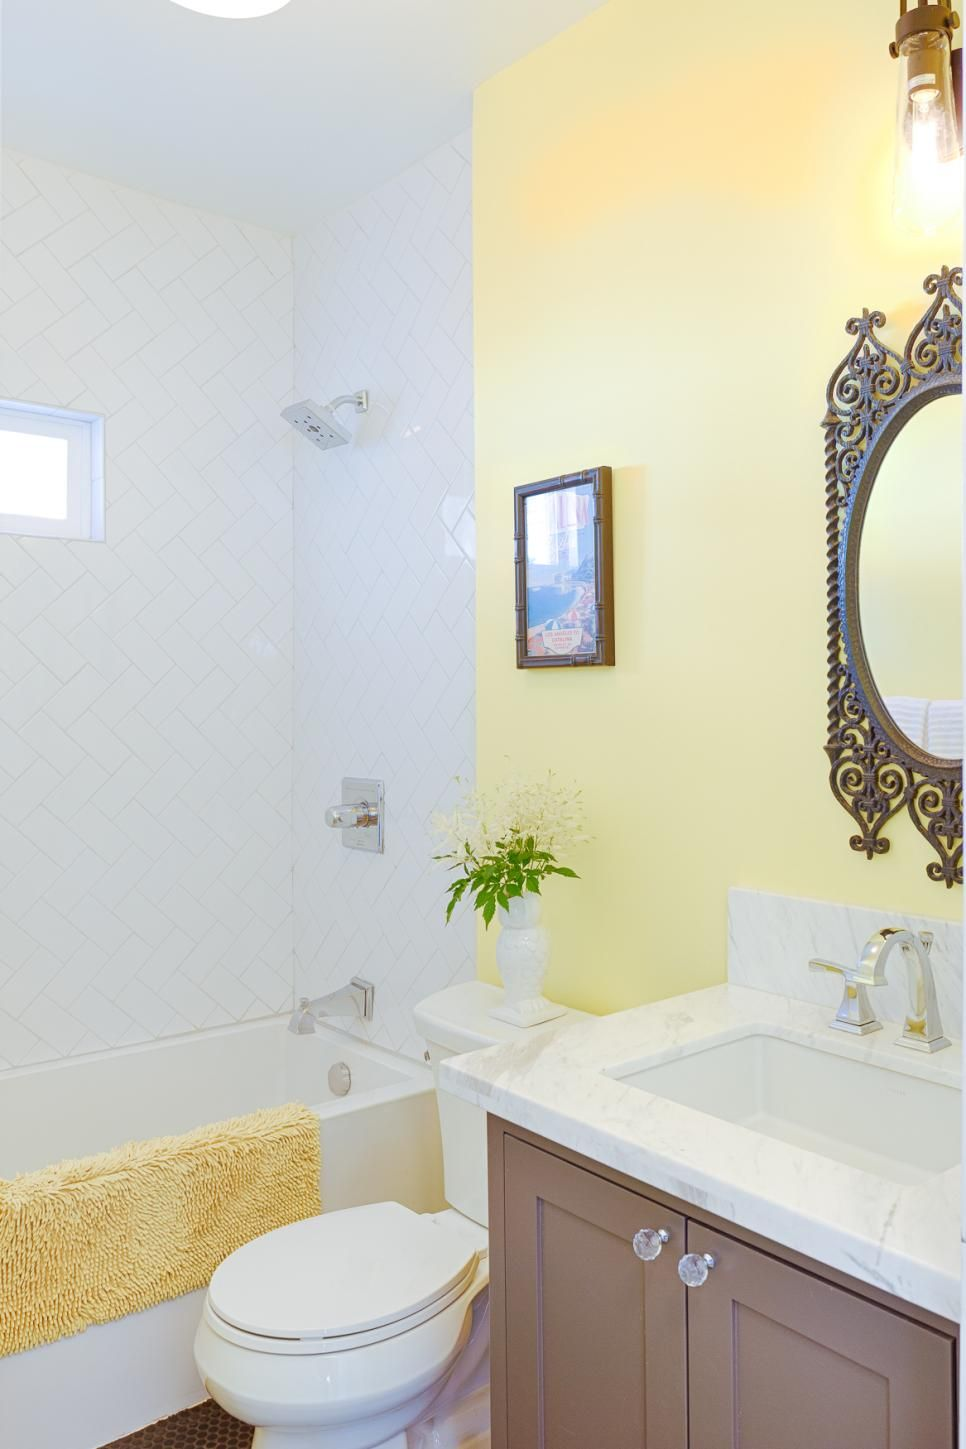 Small bathroom paint ideas no natural light - A Coffee Colored Vanity And Mosaic Tile Floor Are An Imaginative Match For This Bathroom S Pale